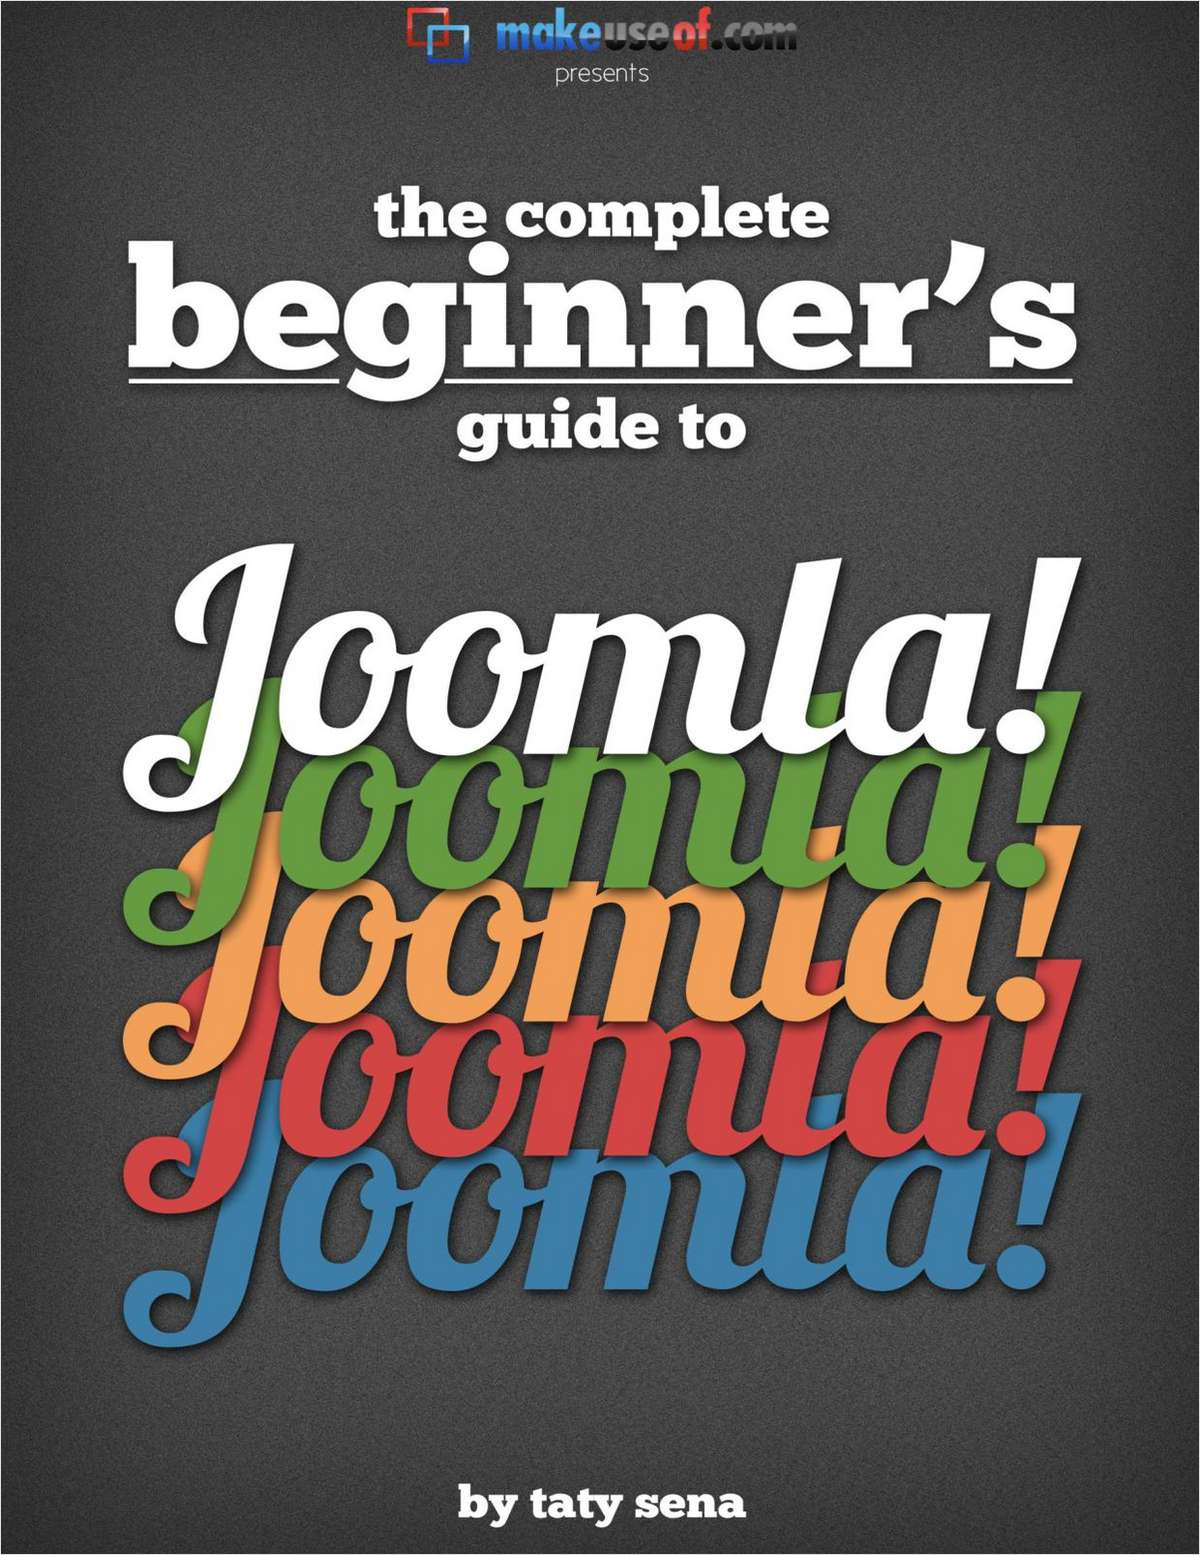 The Beginner's Guide to Joomla